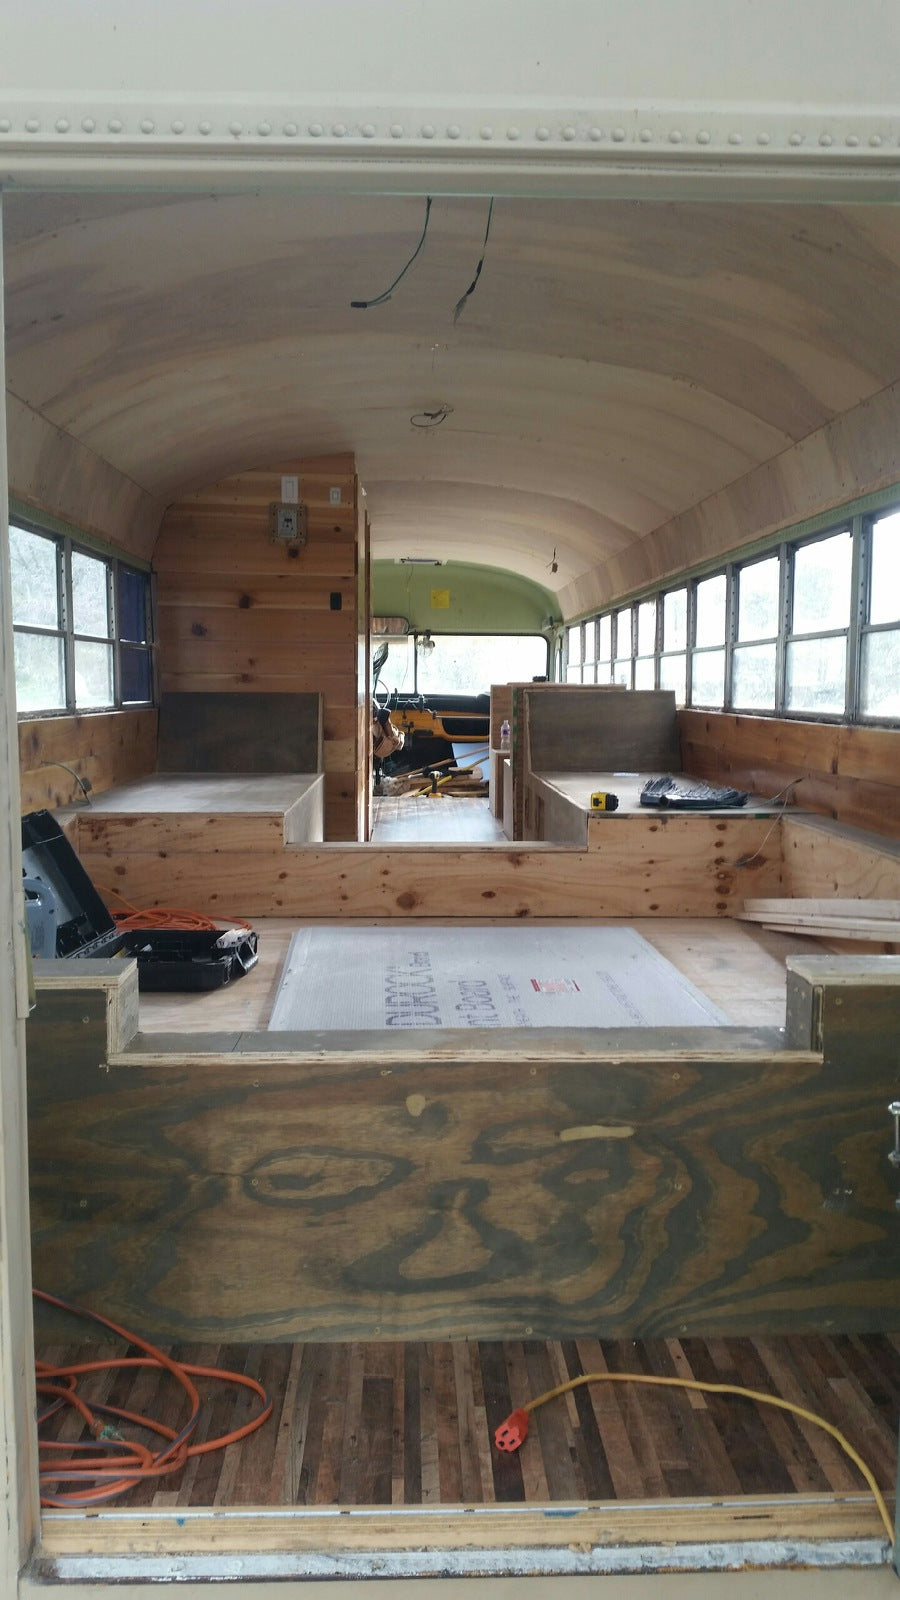 School Bus Conversion - Interior Wood Work in Progress